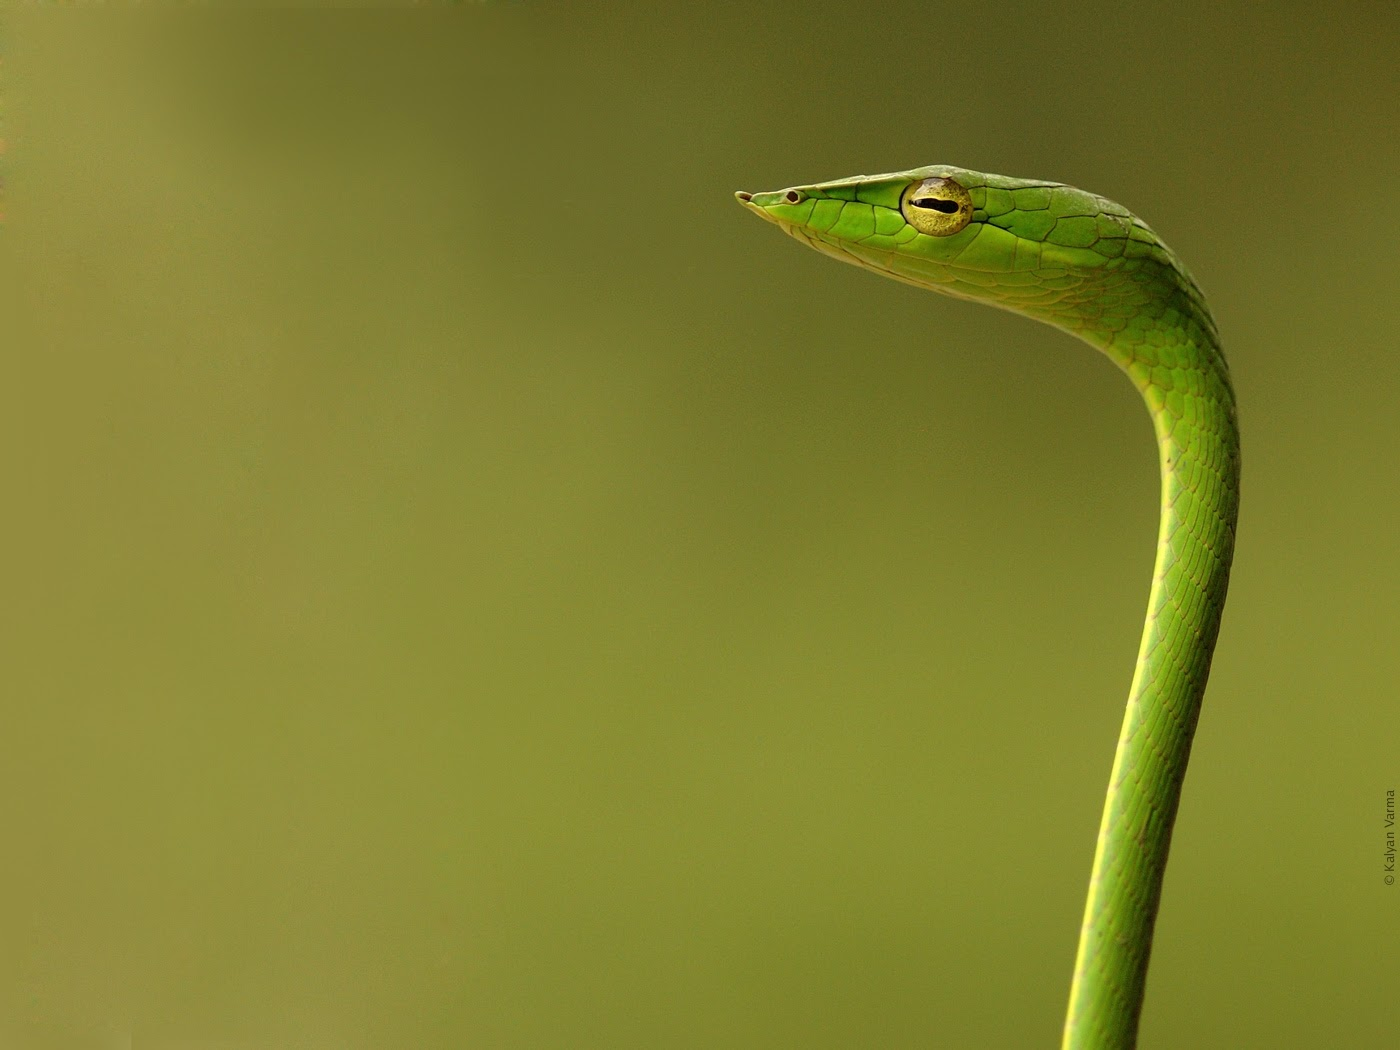 Wallpapers Tagged With SNAKE SNAKE HD Wallpapers Page